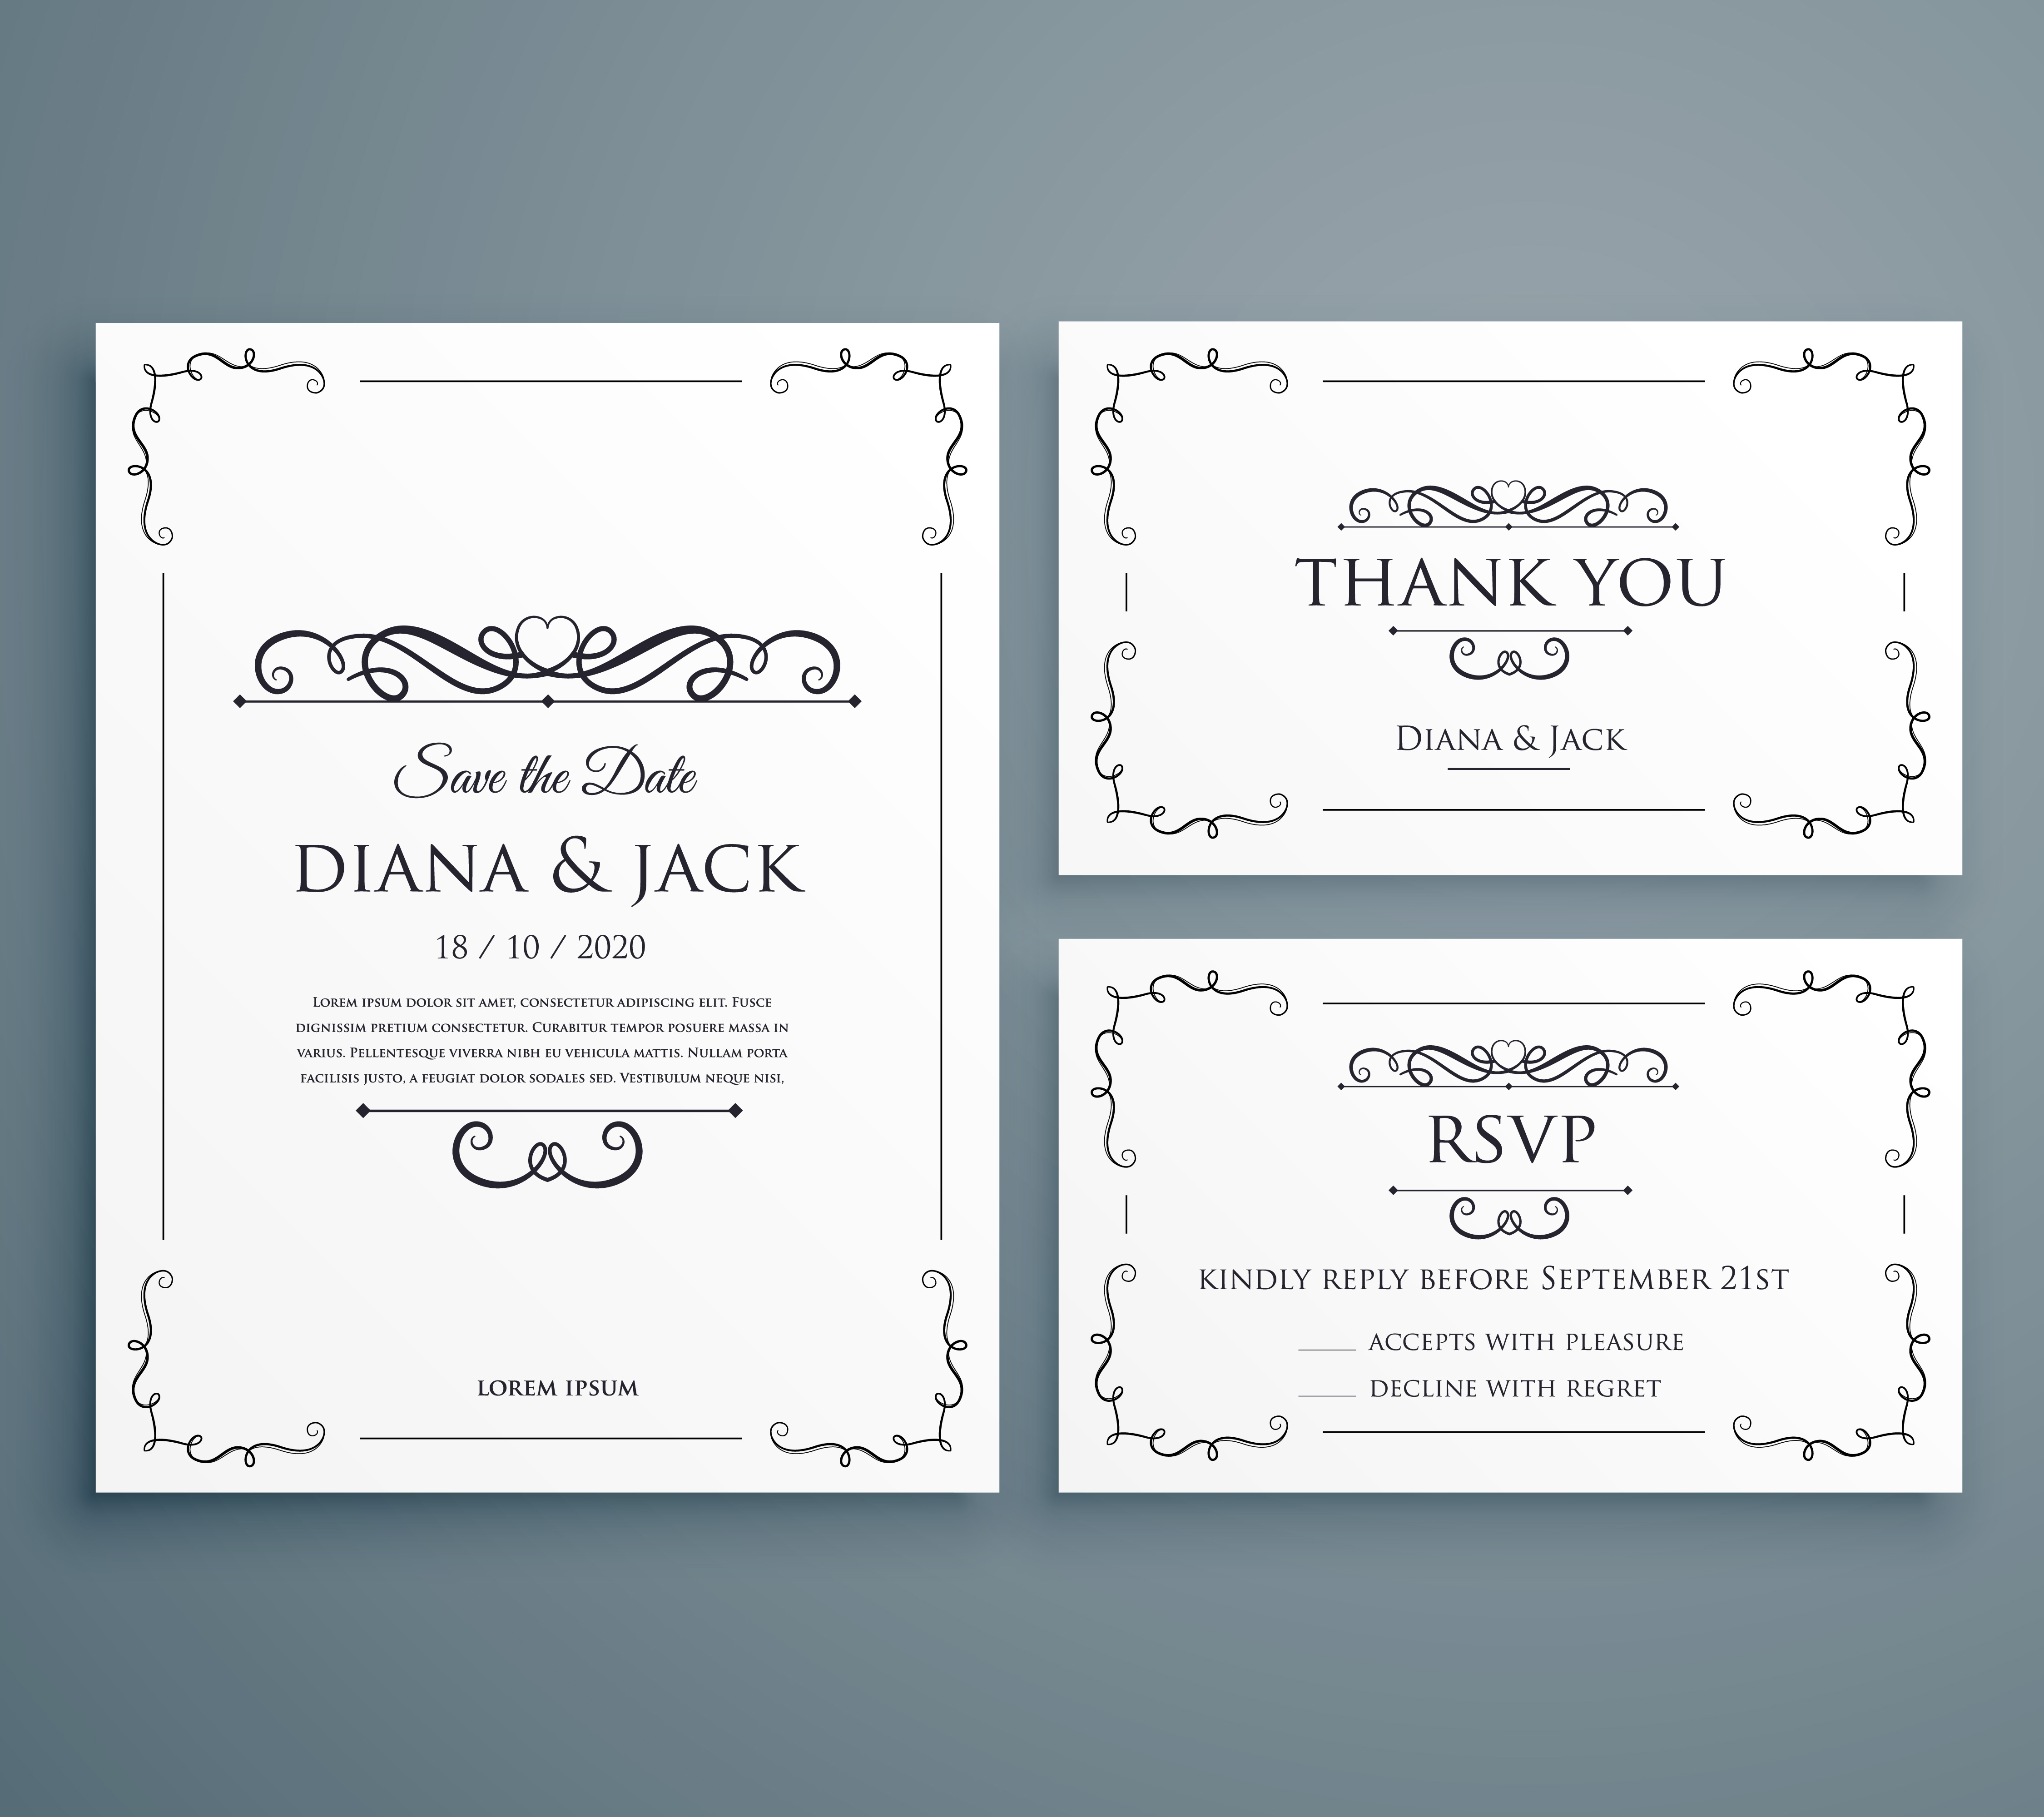 clean wedding invitation, thankyou card, save the date template ...